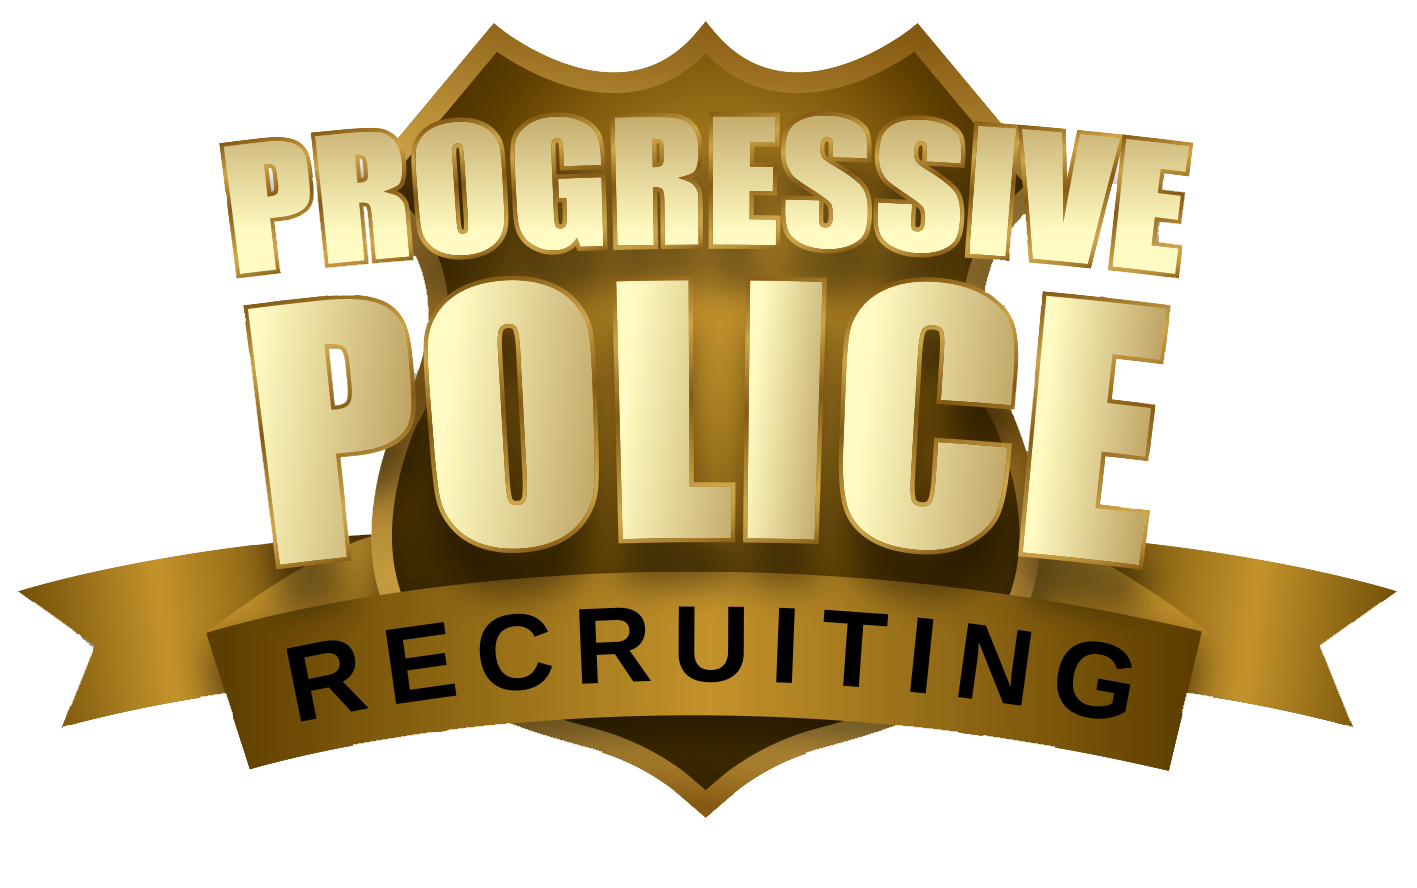 Progressive Police Recruiting